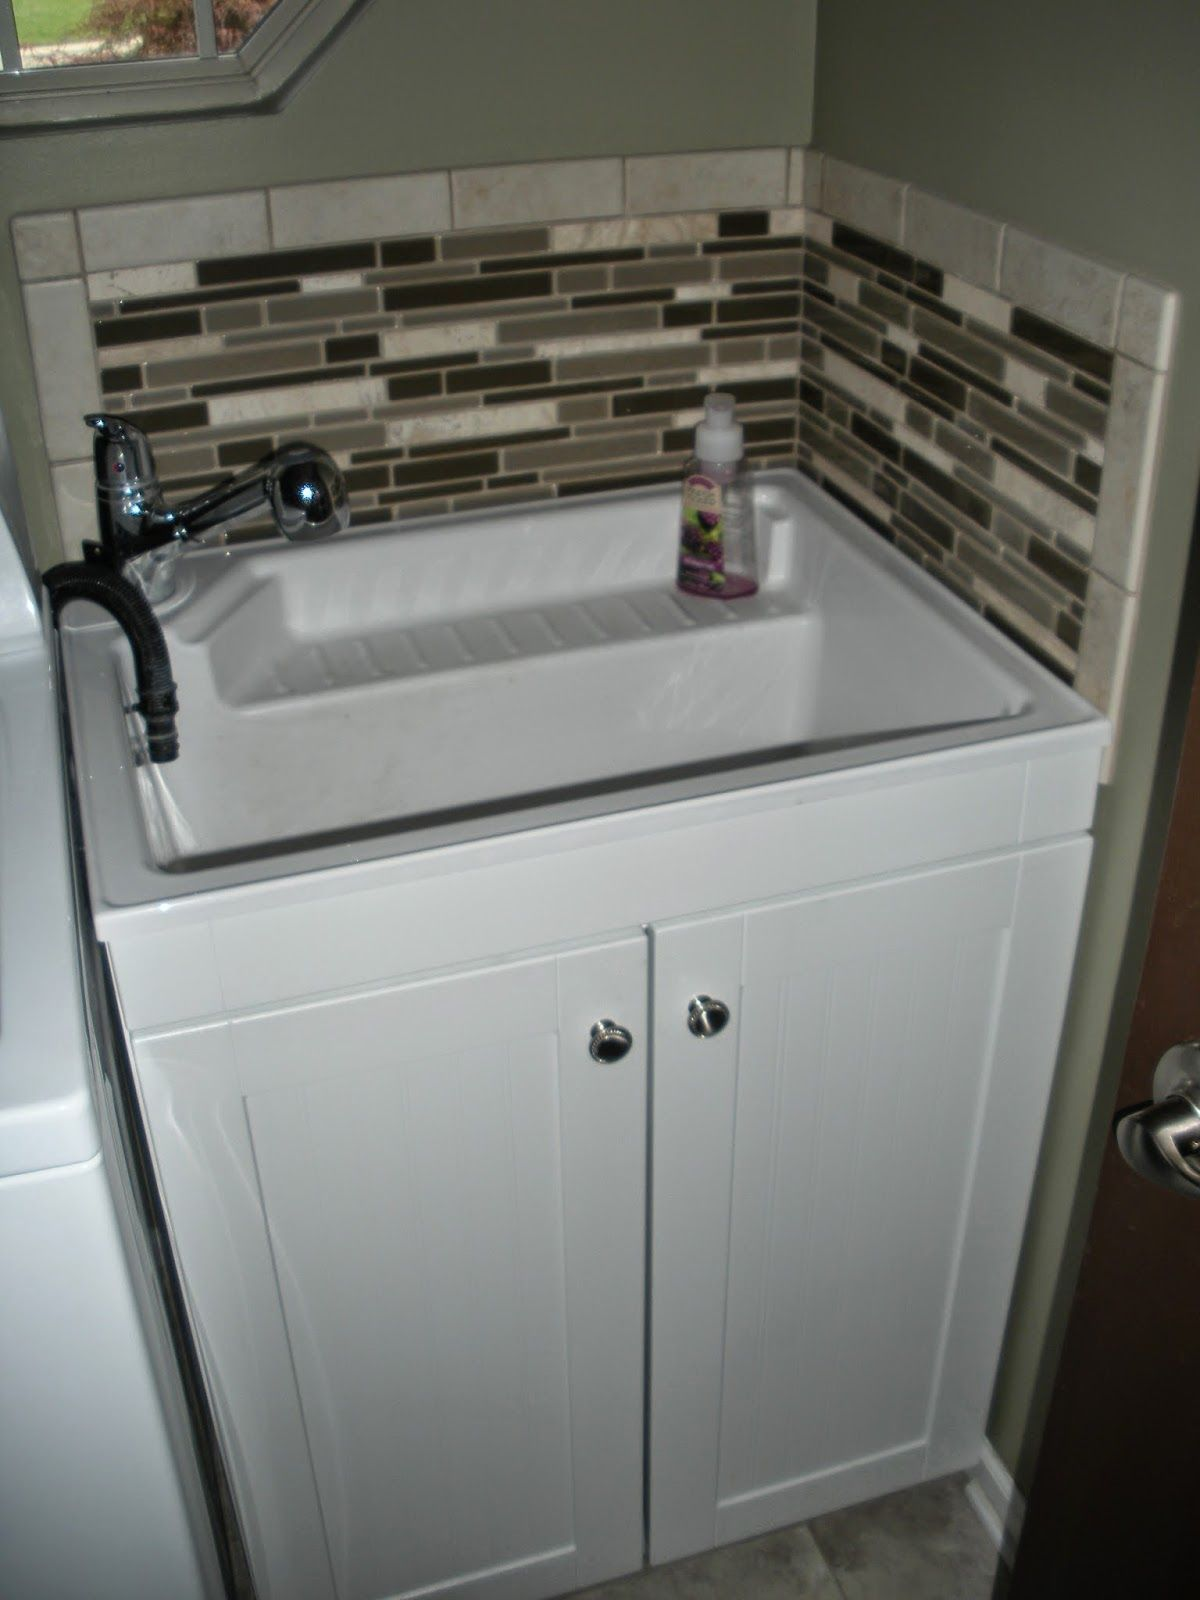 Simple Tips To Help You Deal With Bathroom Plumbing Issues